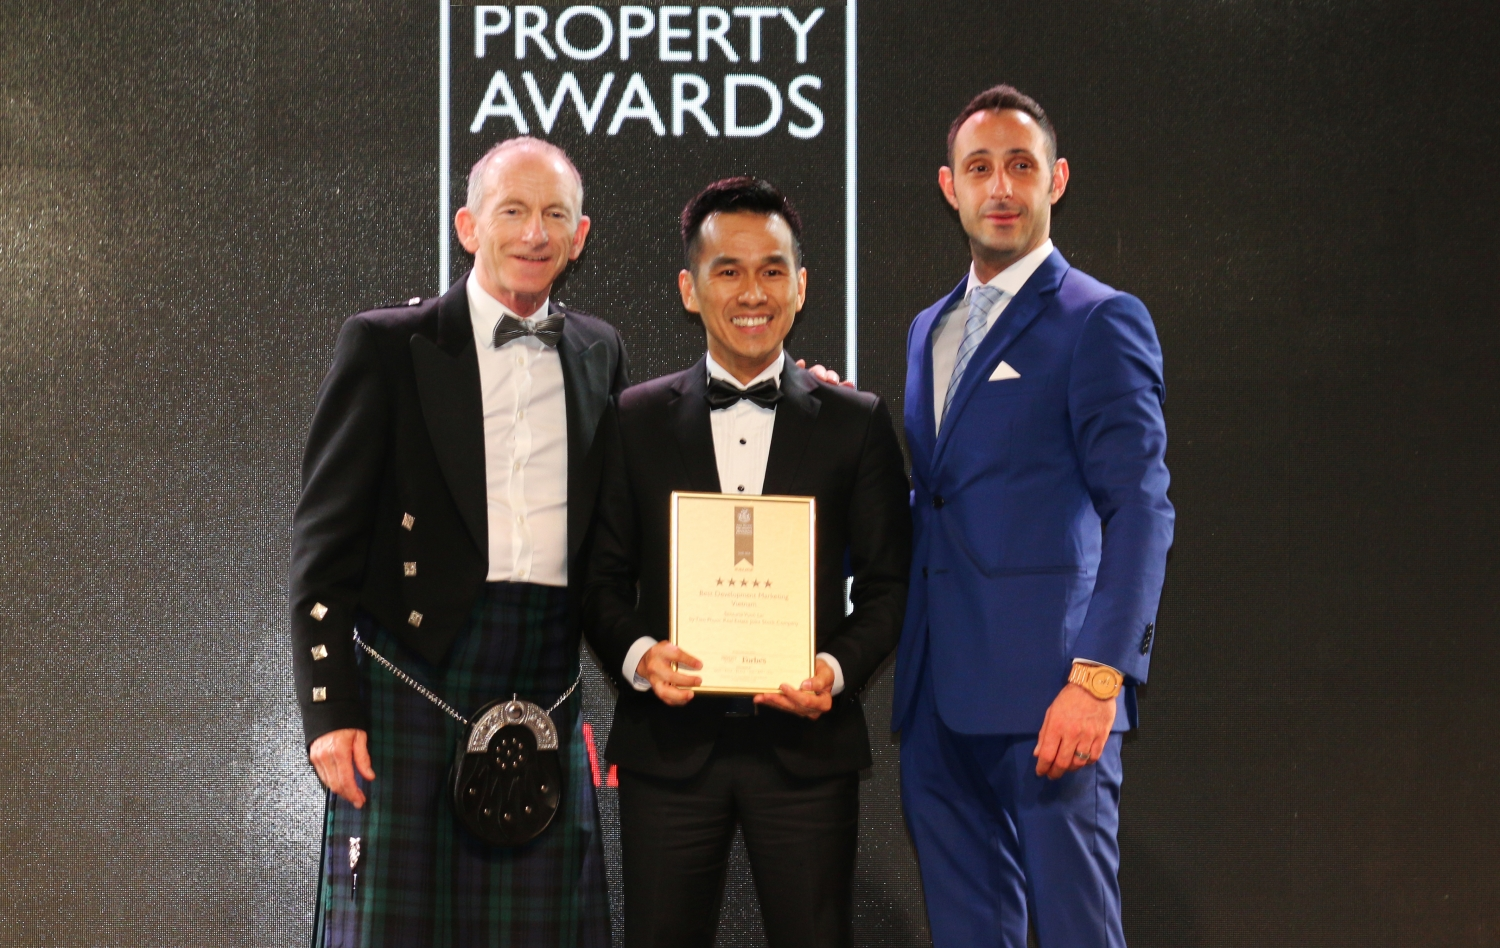 Tien Phuoc wins Top honor at Asia Pacific Property Awards 2018 - 2019